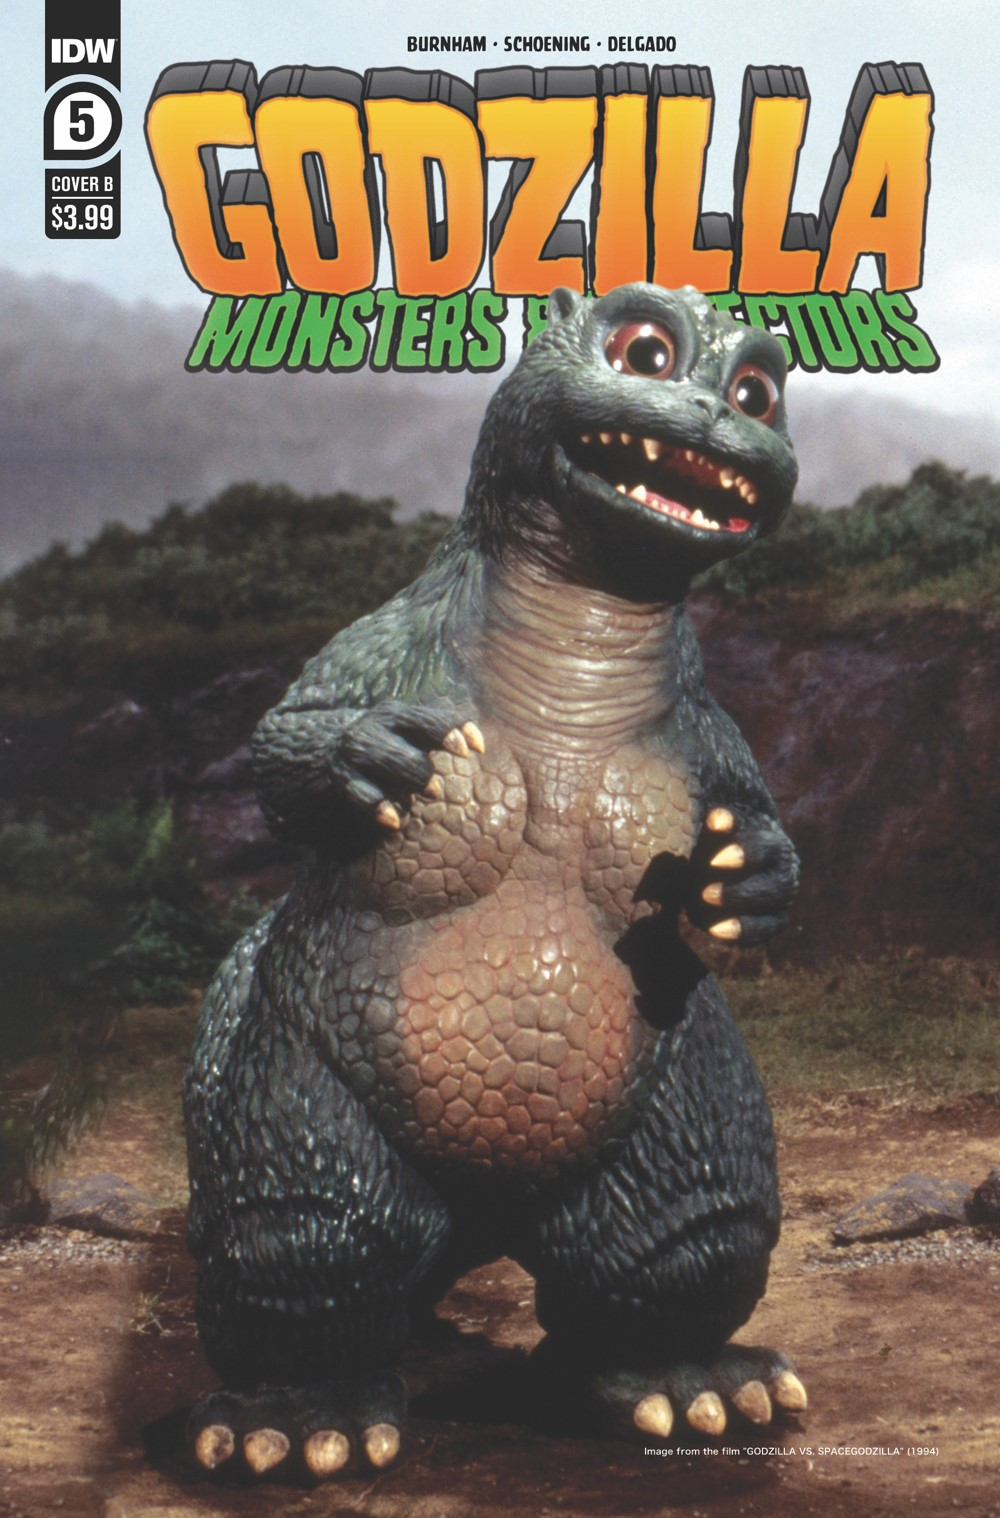 Godzilla_MP05-coverB ComicList: IDW Publishing New Releases for 08/18/2021